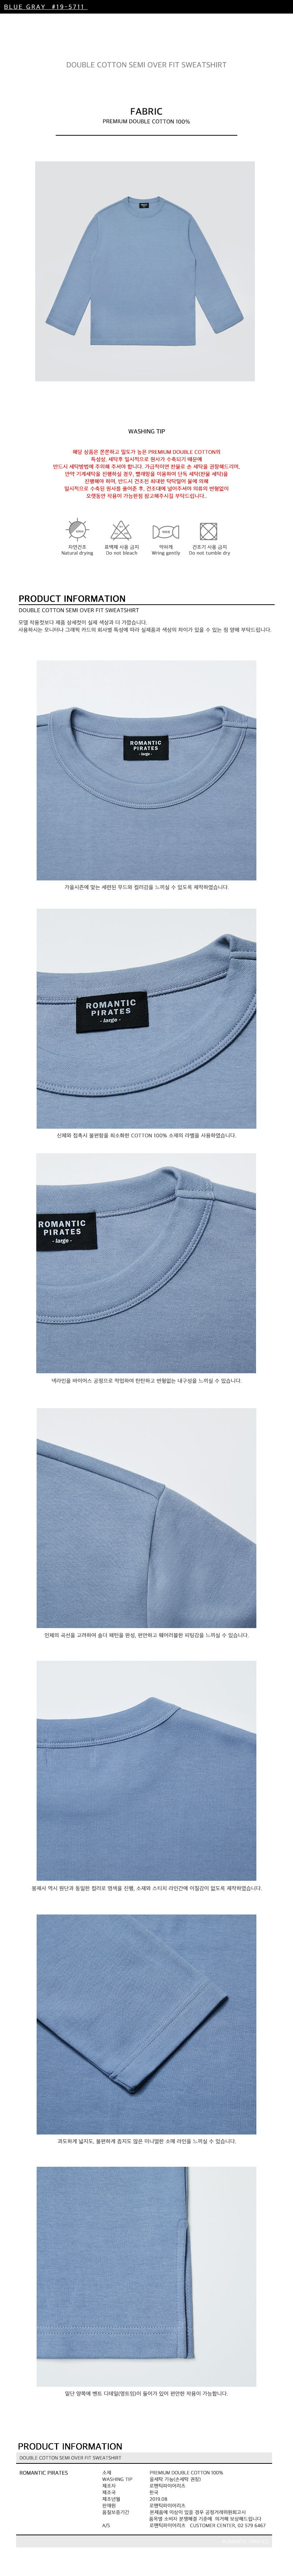 로맨틱 파이어리츠(ROMANTICPIRATES) DOUBLE COTTON SWEATSHIRT(BLUE GRAY)